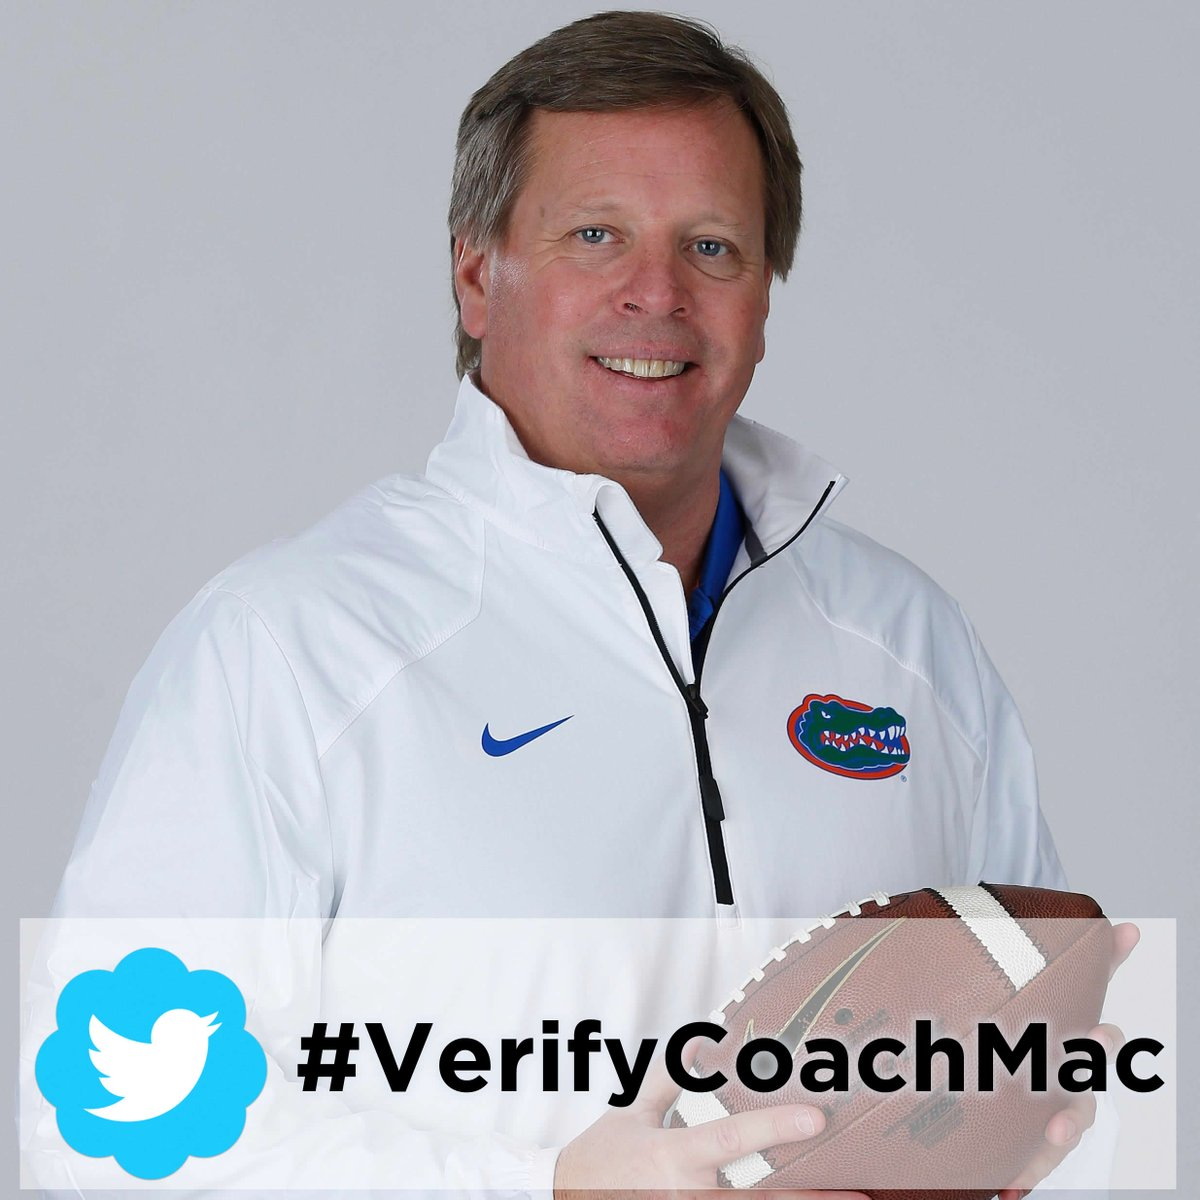 #Gators, we need your help. Let's get #VerifyCoachMac trending so @CoachMcElwain is @verified on @Twitter! Please RT! http://t.co/kHjXDJLhwc